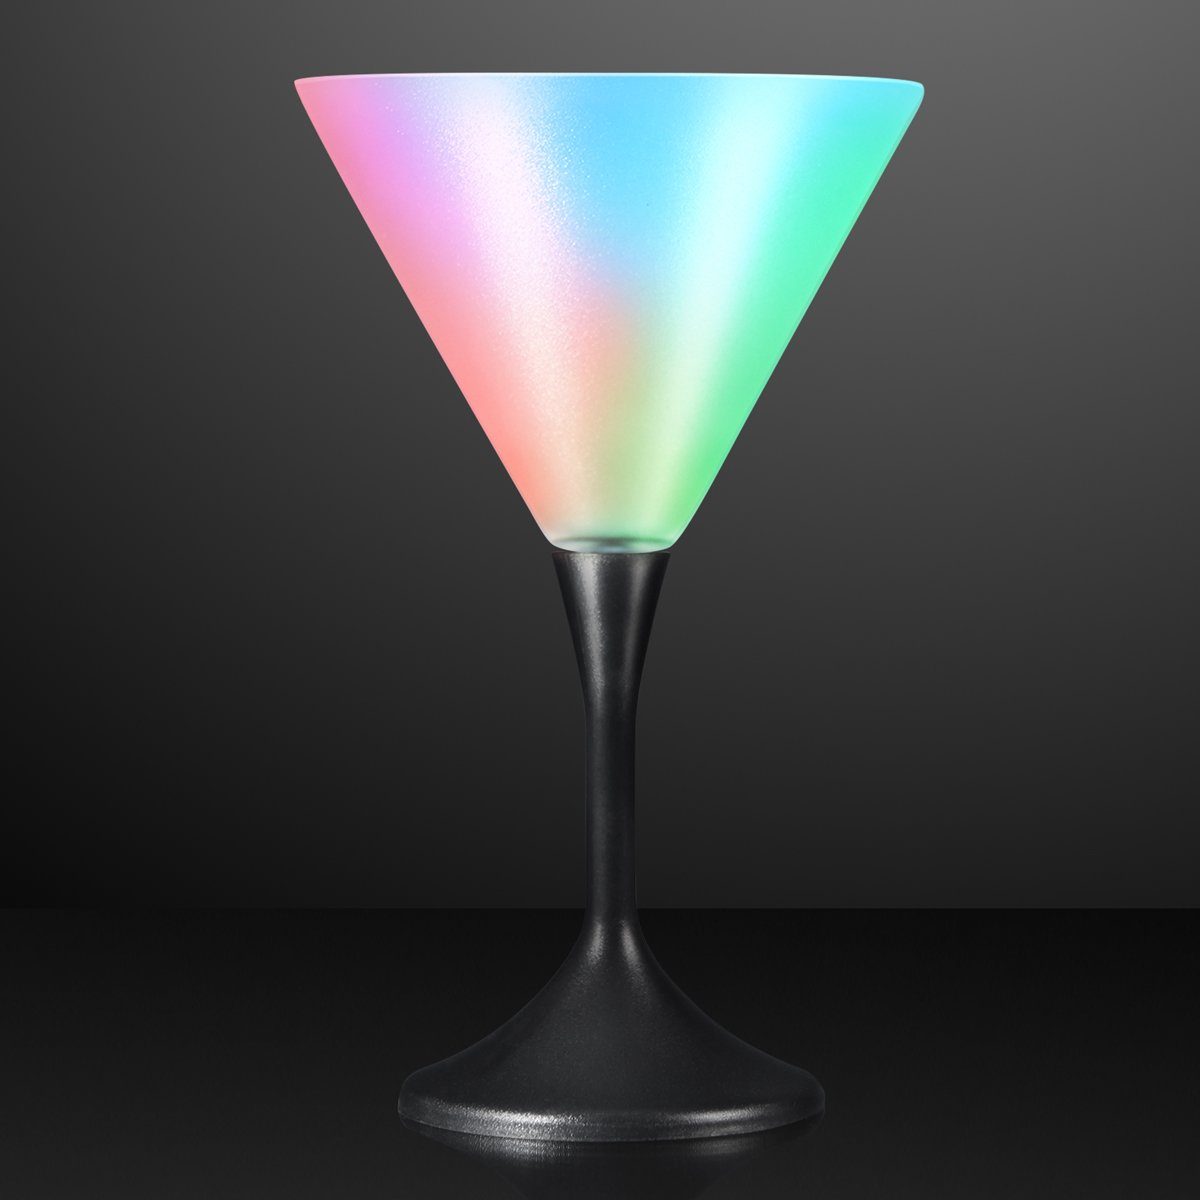 Light Up Frosted Martini Glasses with Black Base & Color Changing LED Lights (Set of 12) FlashingBlinkyLights